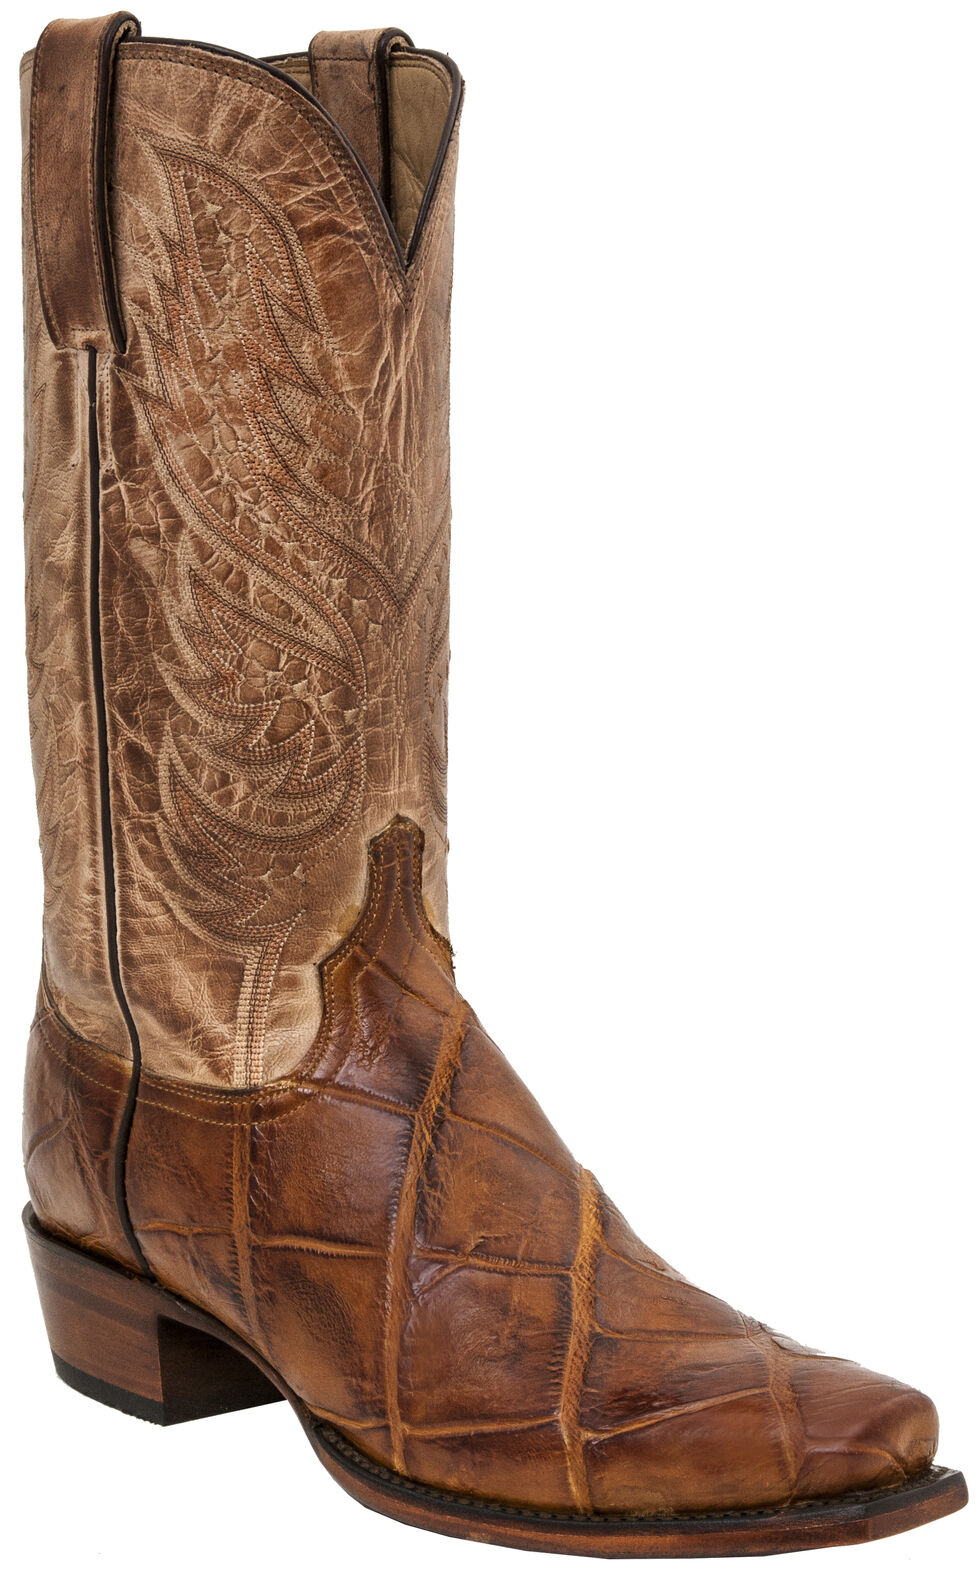 Lucchese Men's Handmade Rex Alligator Western Boots - Square Toe, Brandy, hi-res